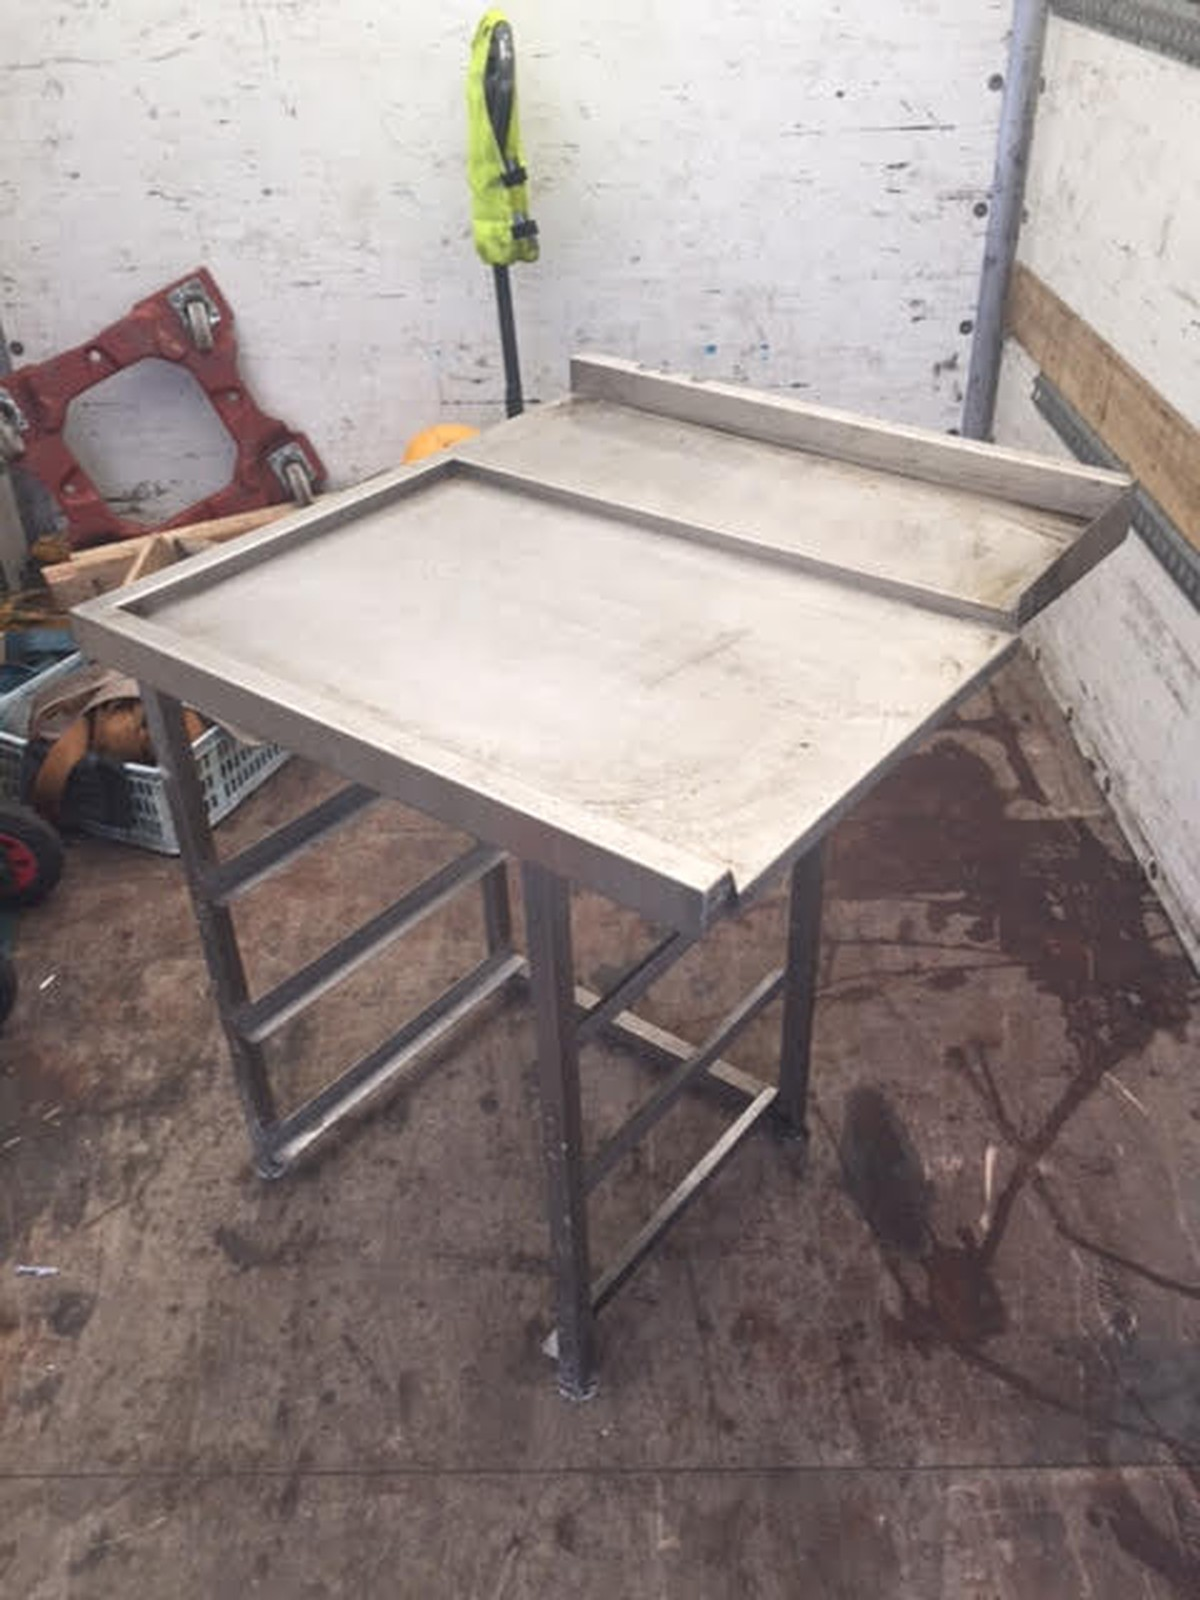 Table Top Dishwasher India : ... Tray Racks Left Stainless Steel Out Table for Dishwasher - London